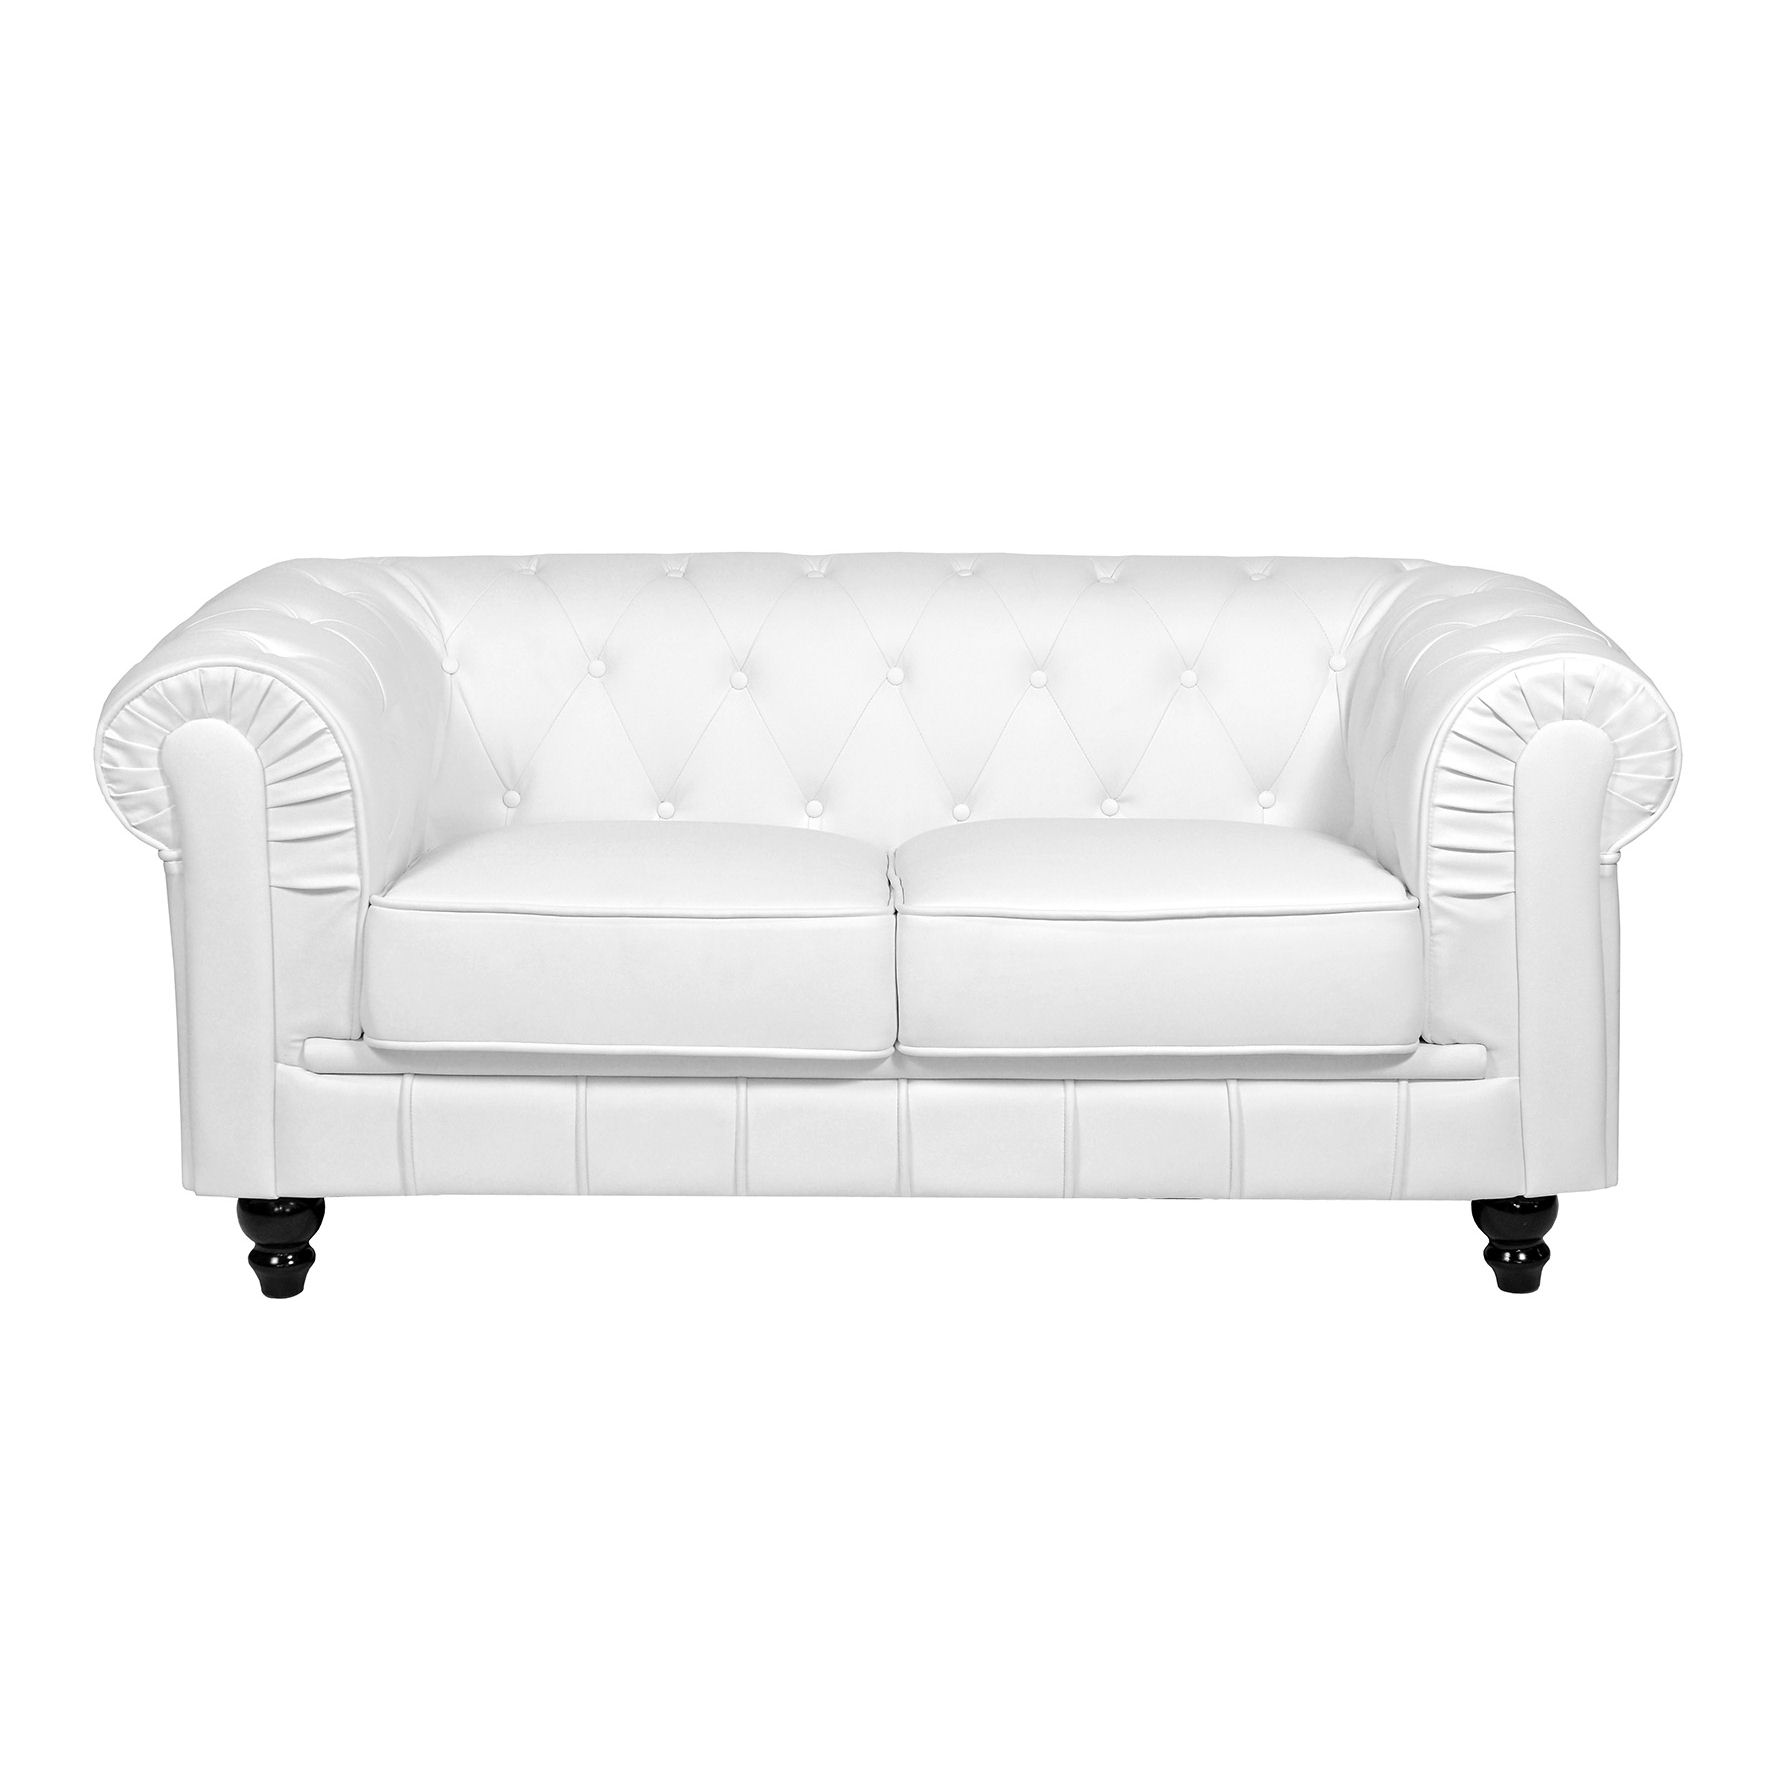 Deco in paris canape 2 places blanc chesterfield can chester 2p pu blanc - Canape chesterfield blanc ...